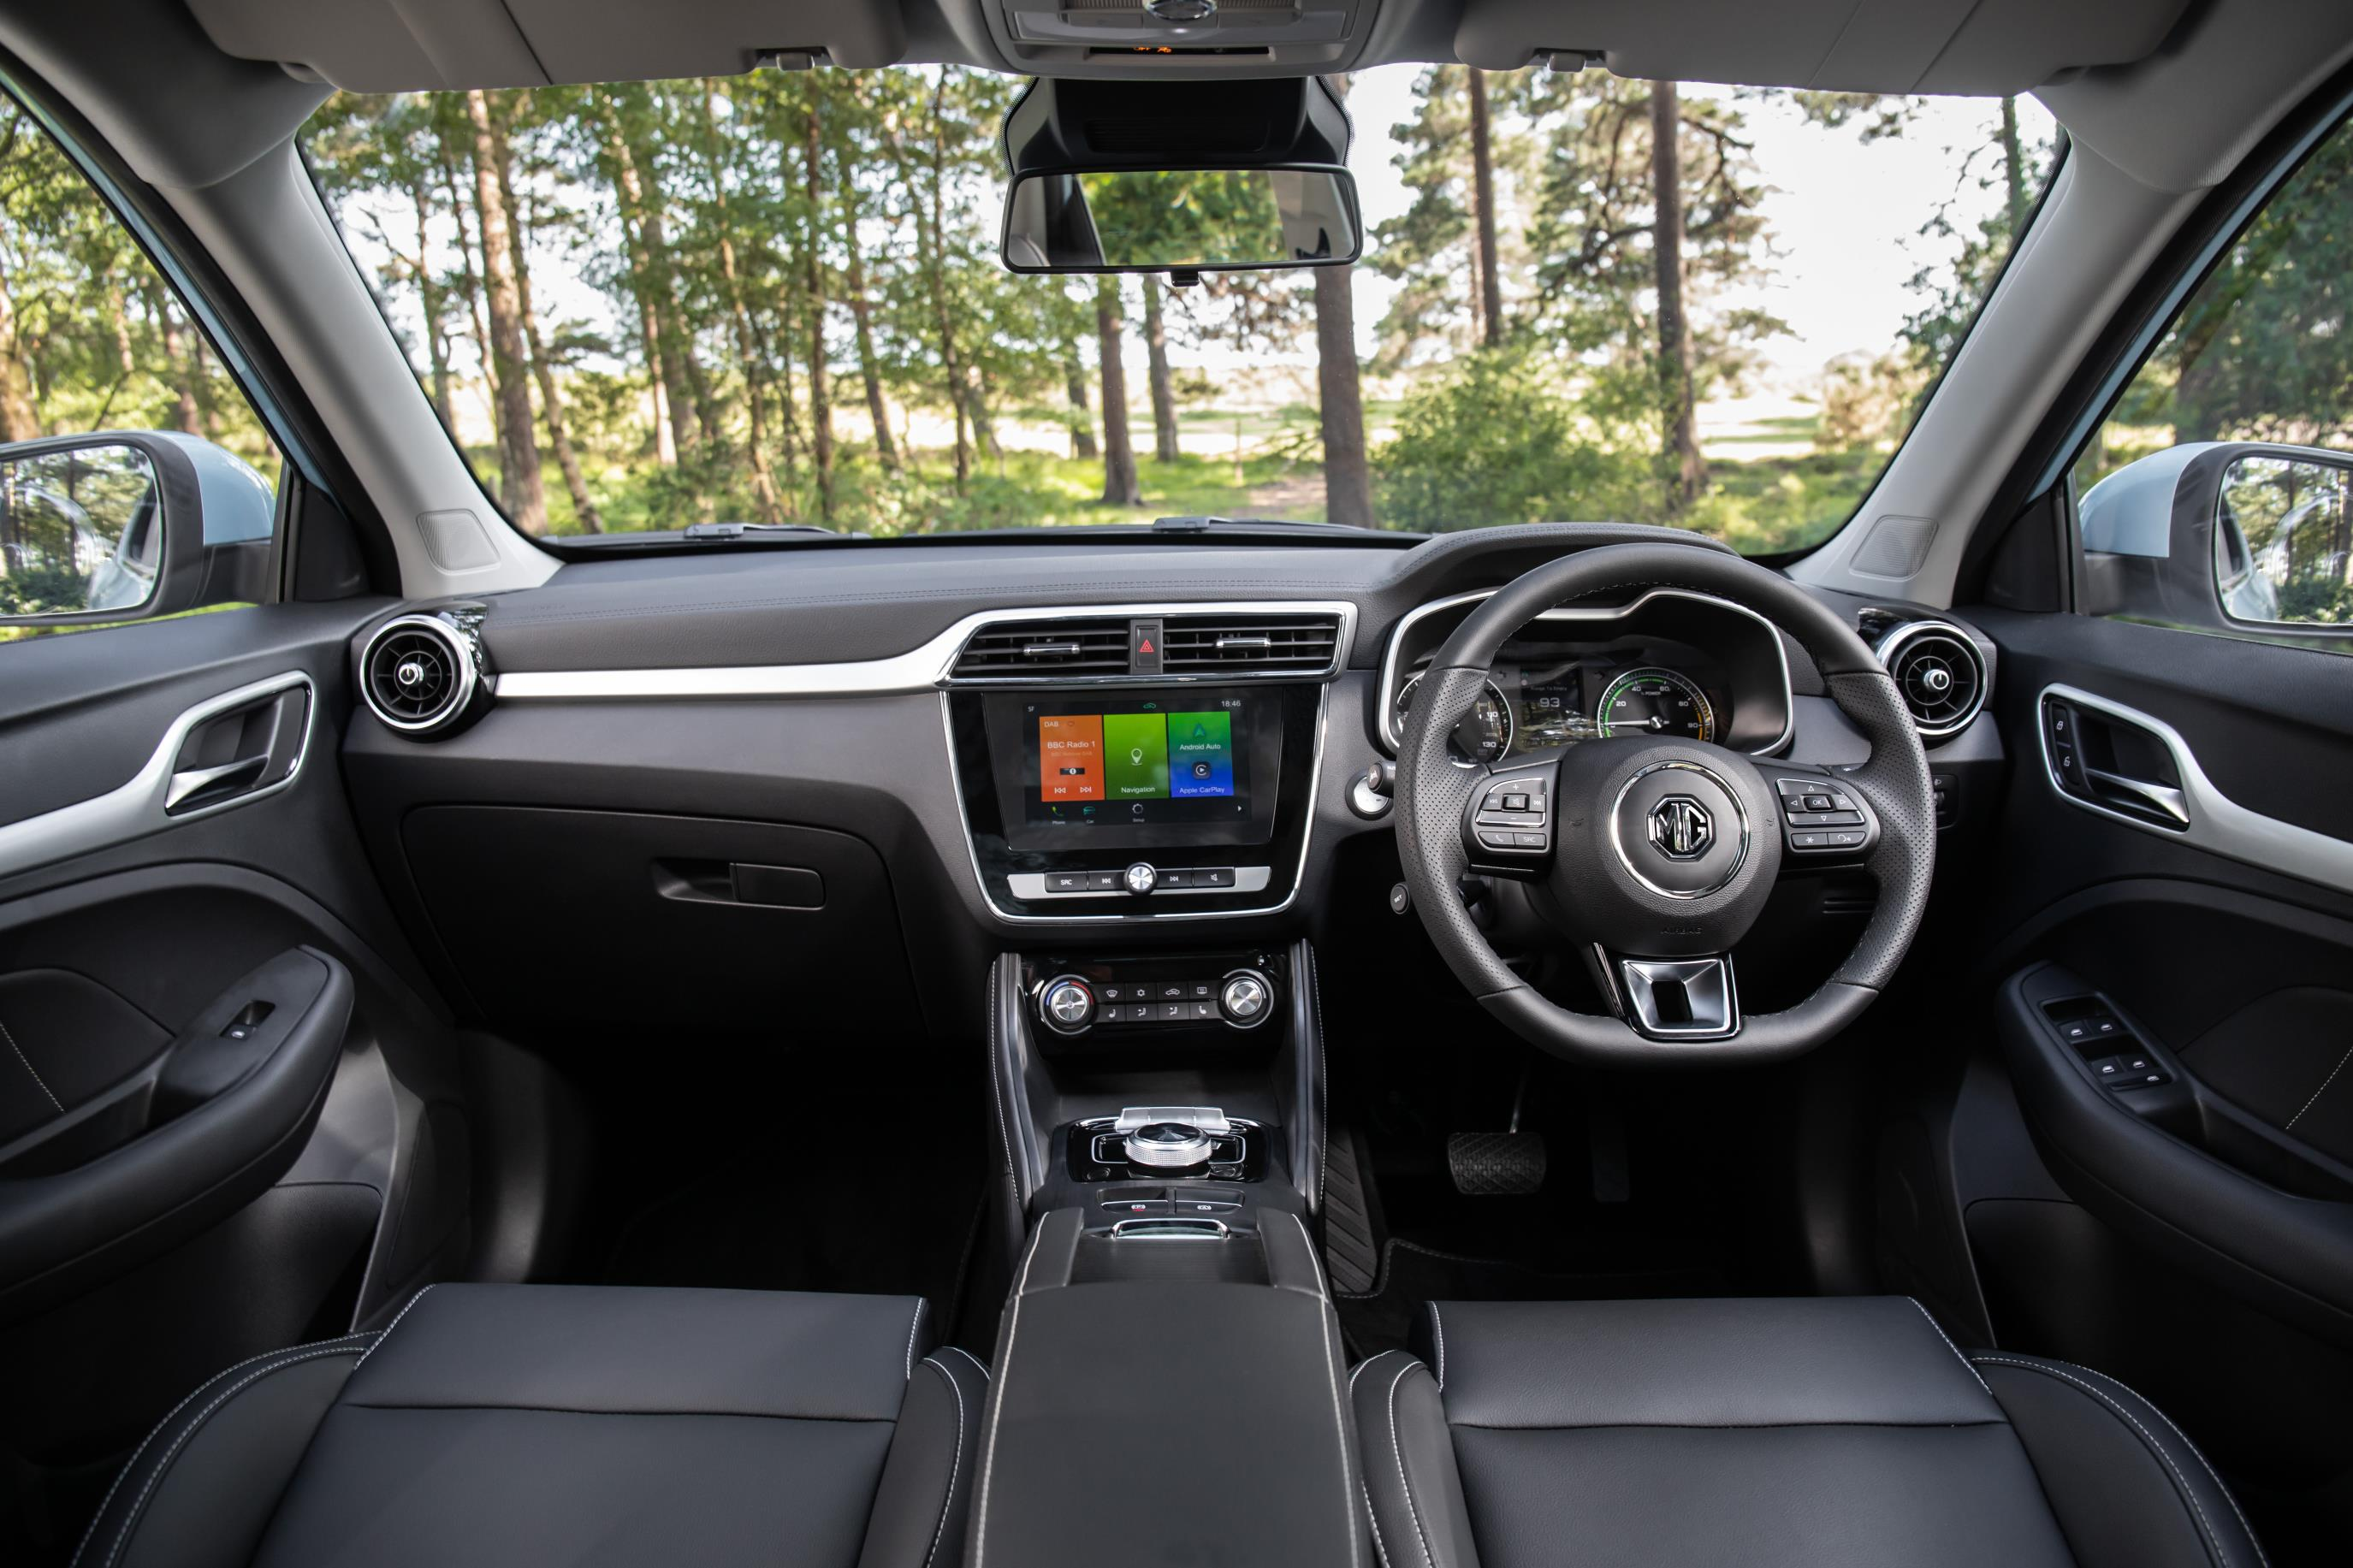 MG ZS EV interior.jpg (468 KB)